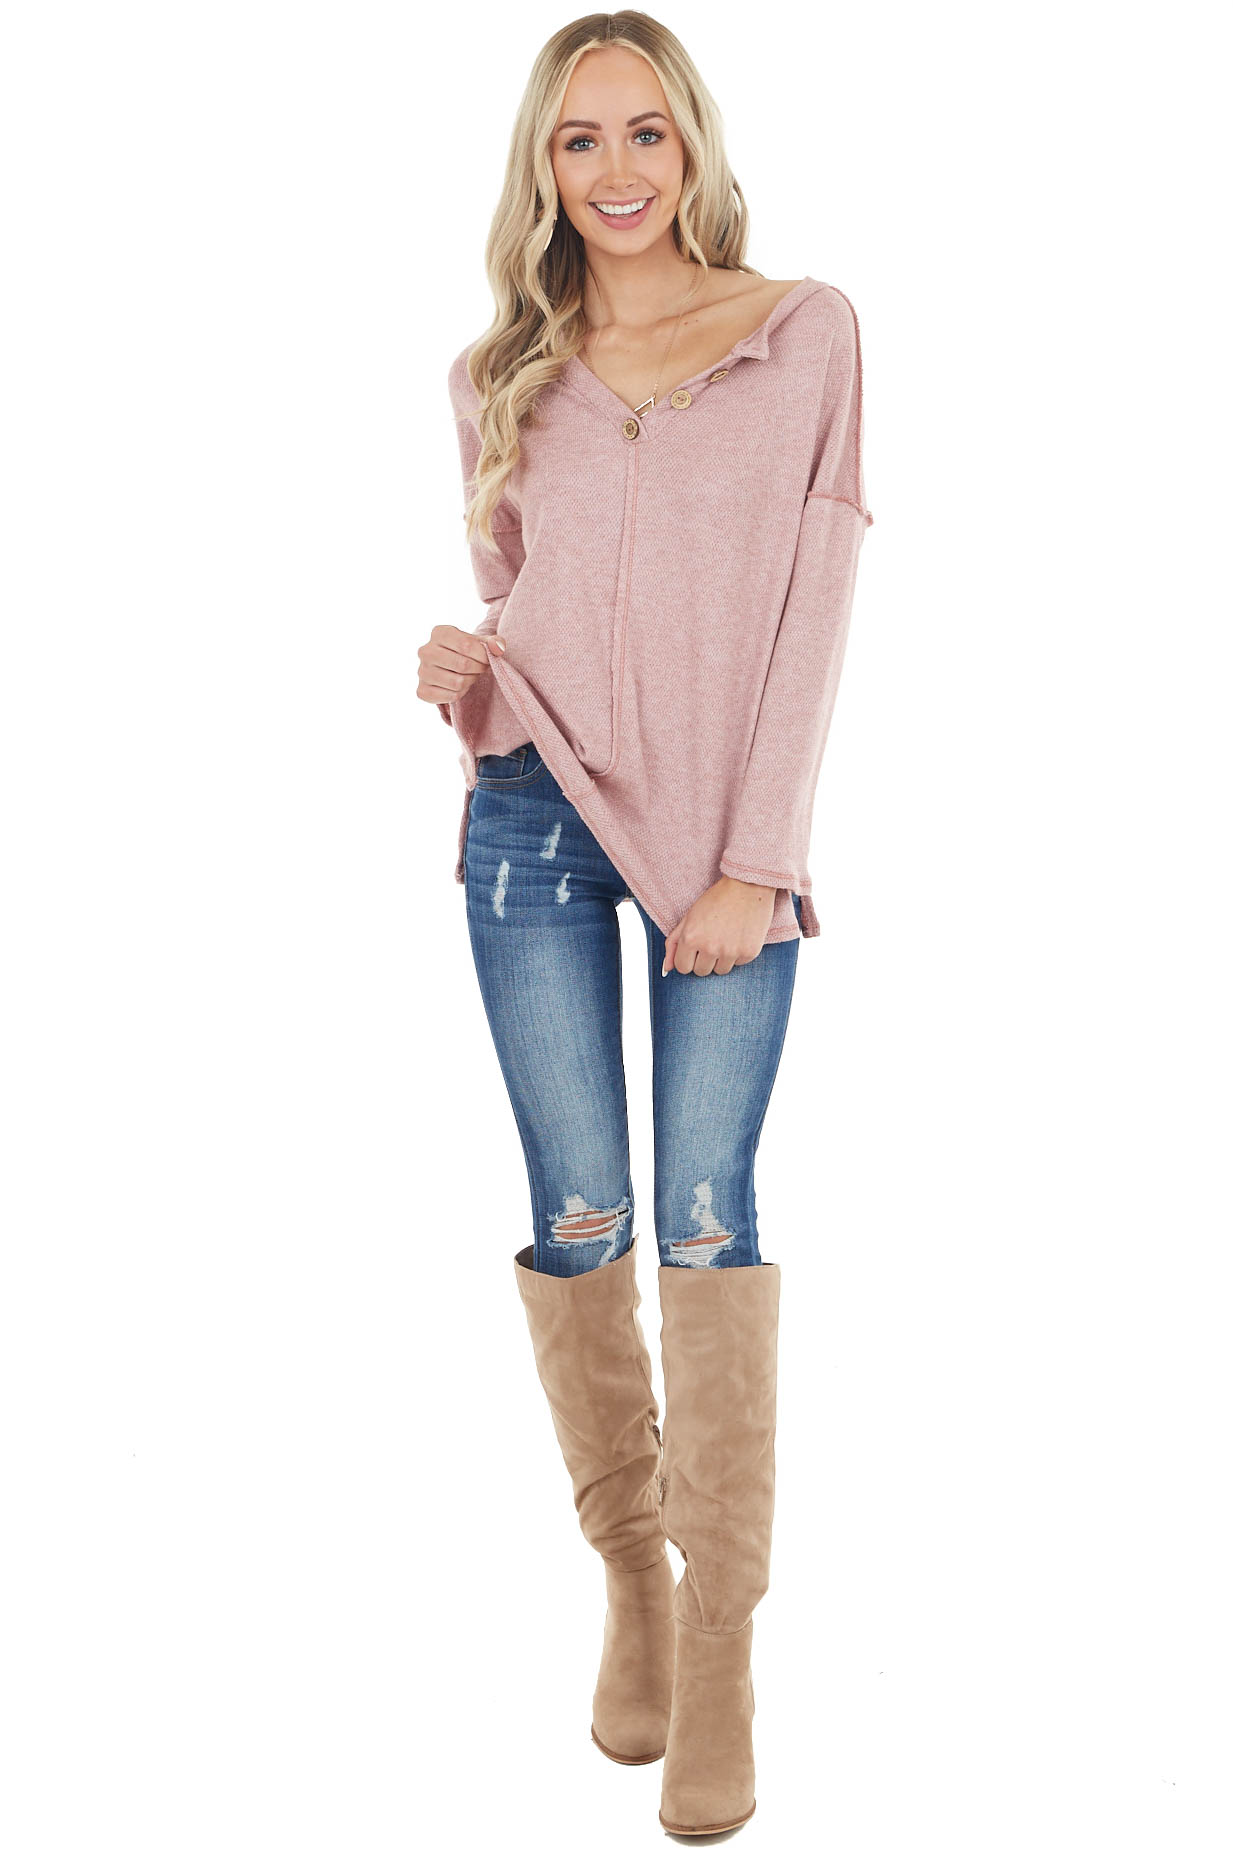 Heathered Dusty Blush Henley Top with Reversed Seam Details